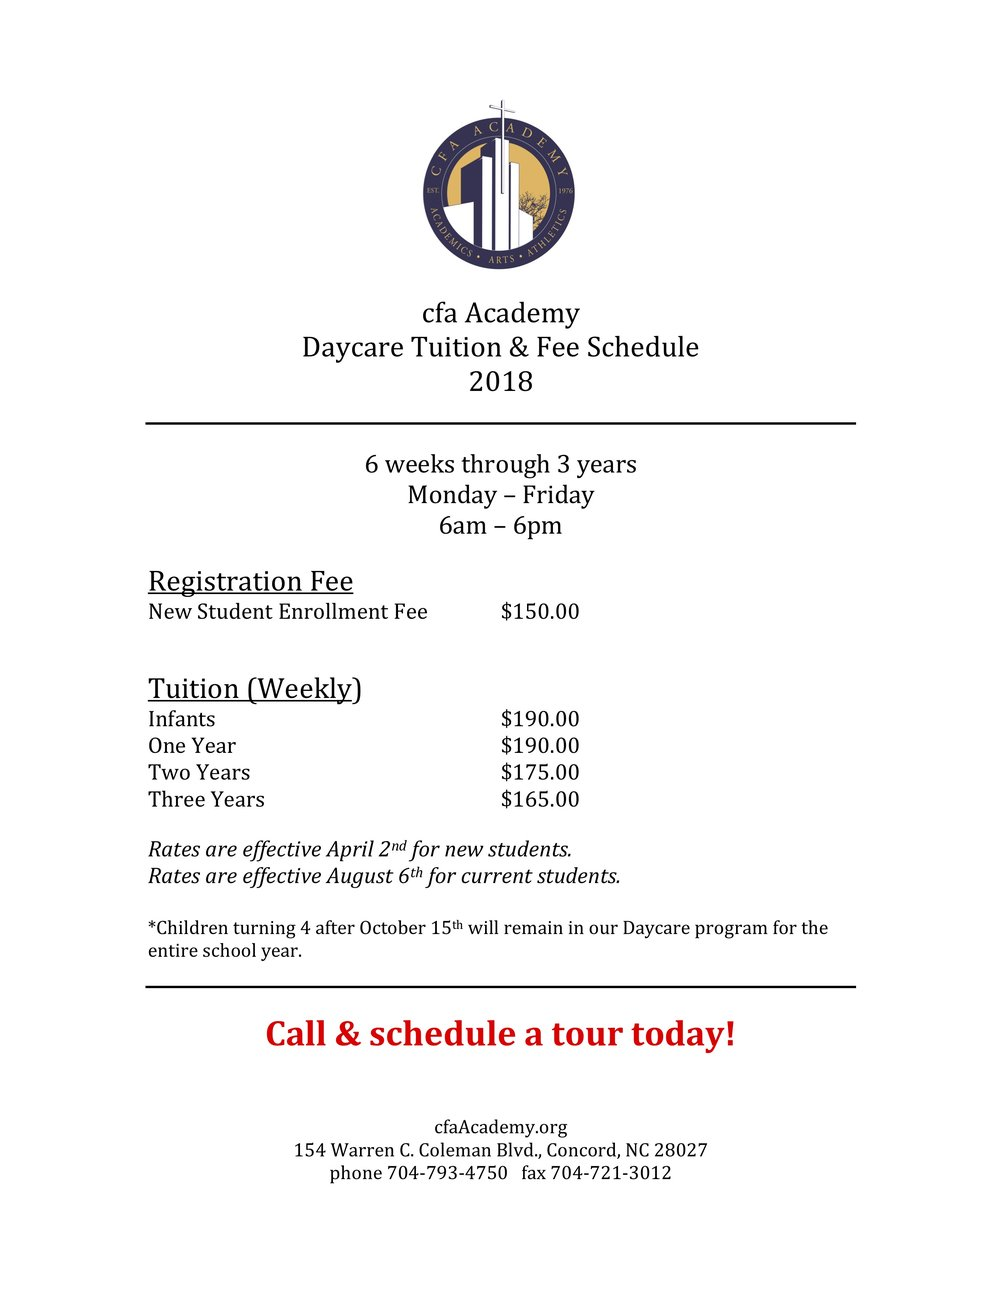 Daycare Tuition Fee Schedule 2018.jpg